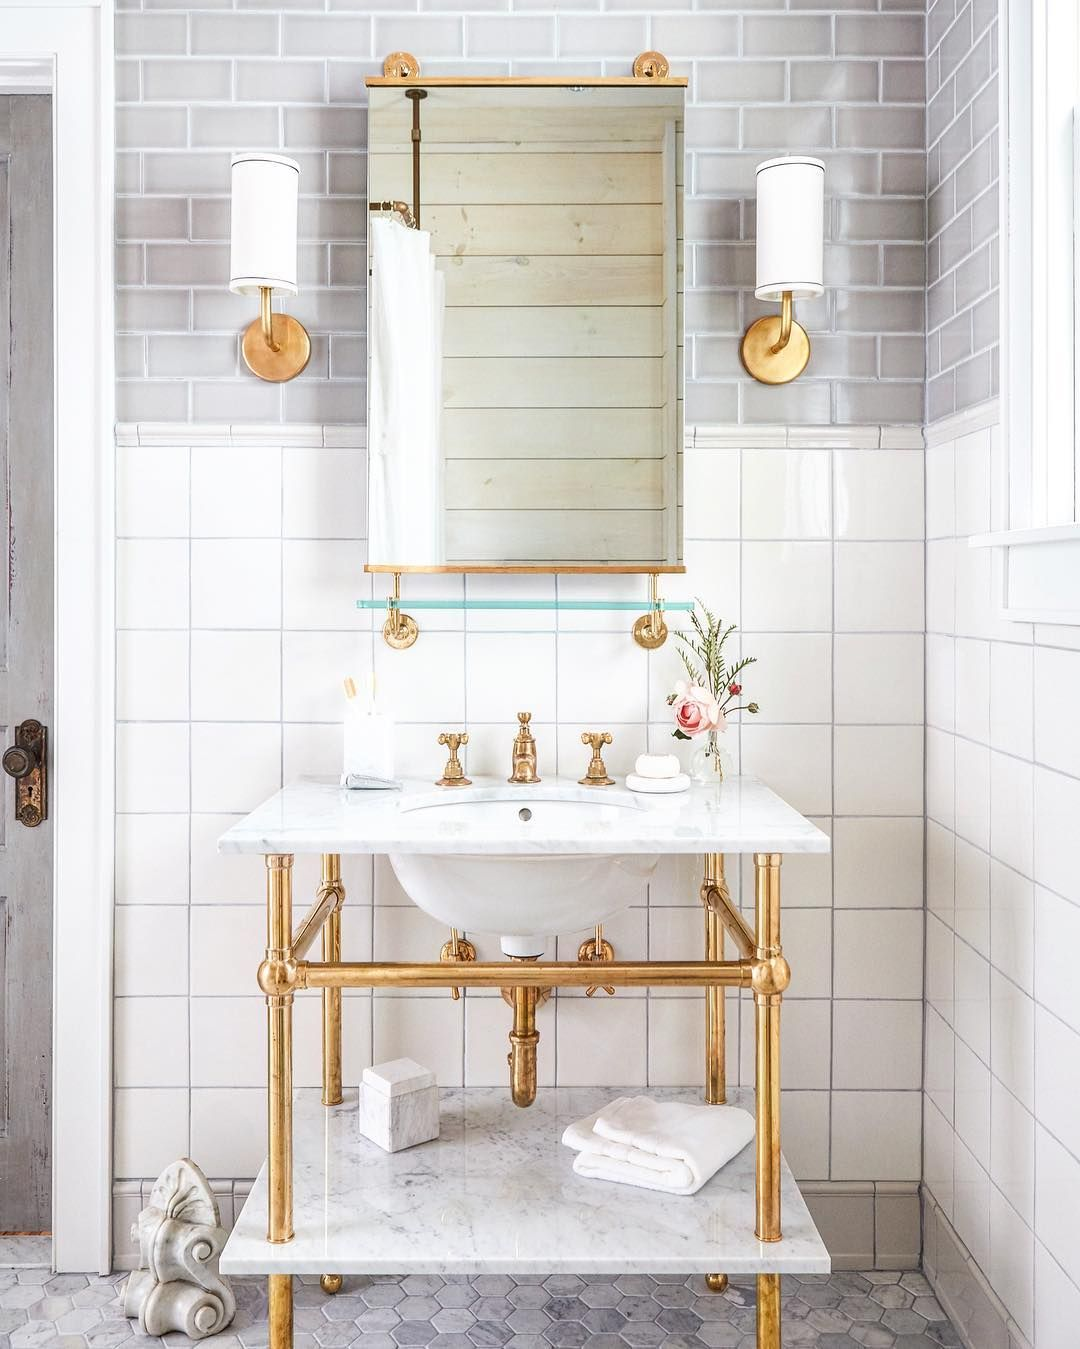 Knock Knock Salle De Bain ~ pin by katerine getchell on bathrooms like woa pinterest